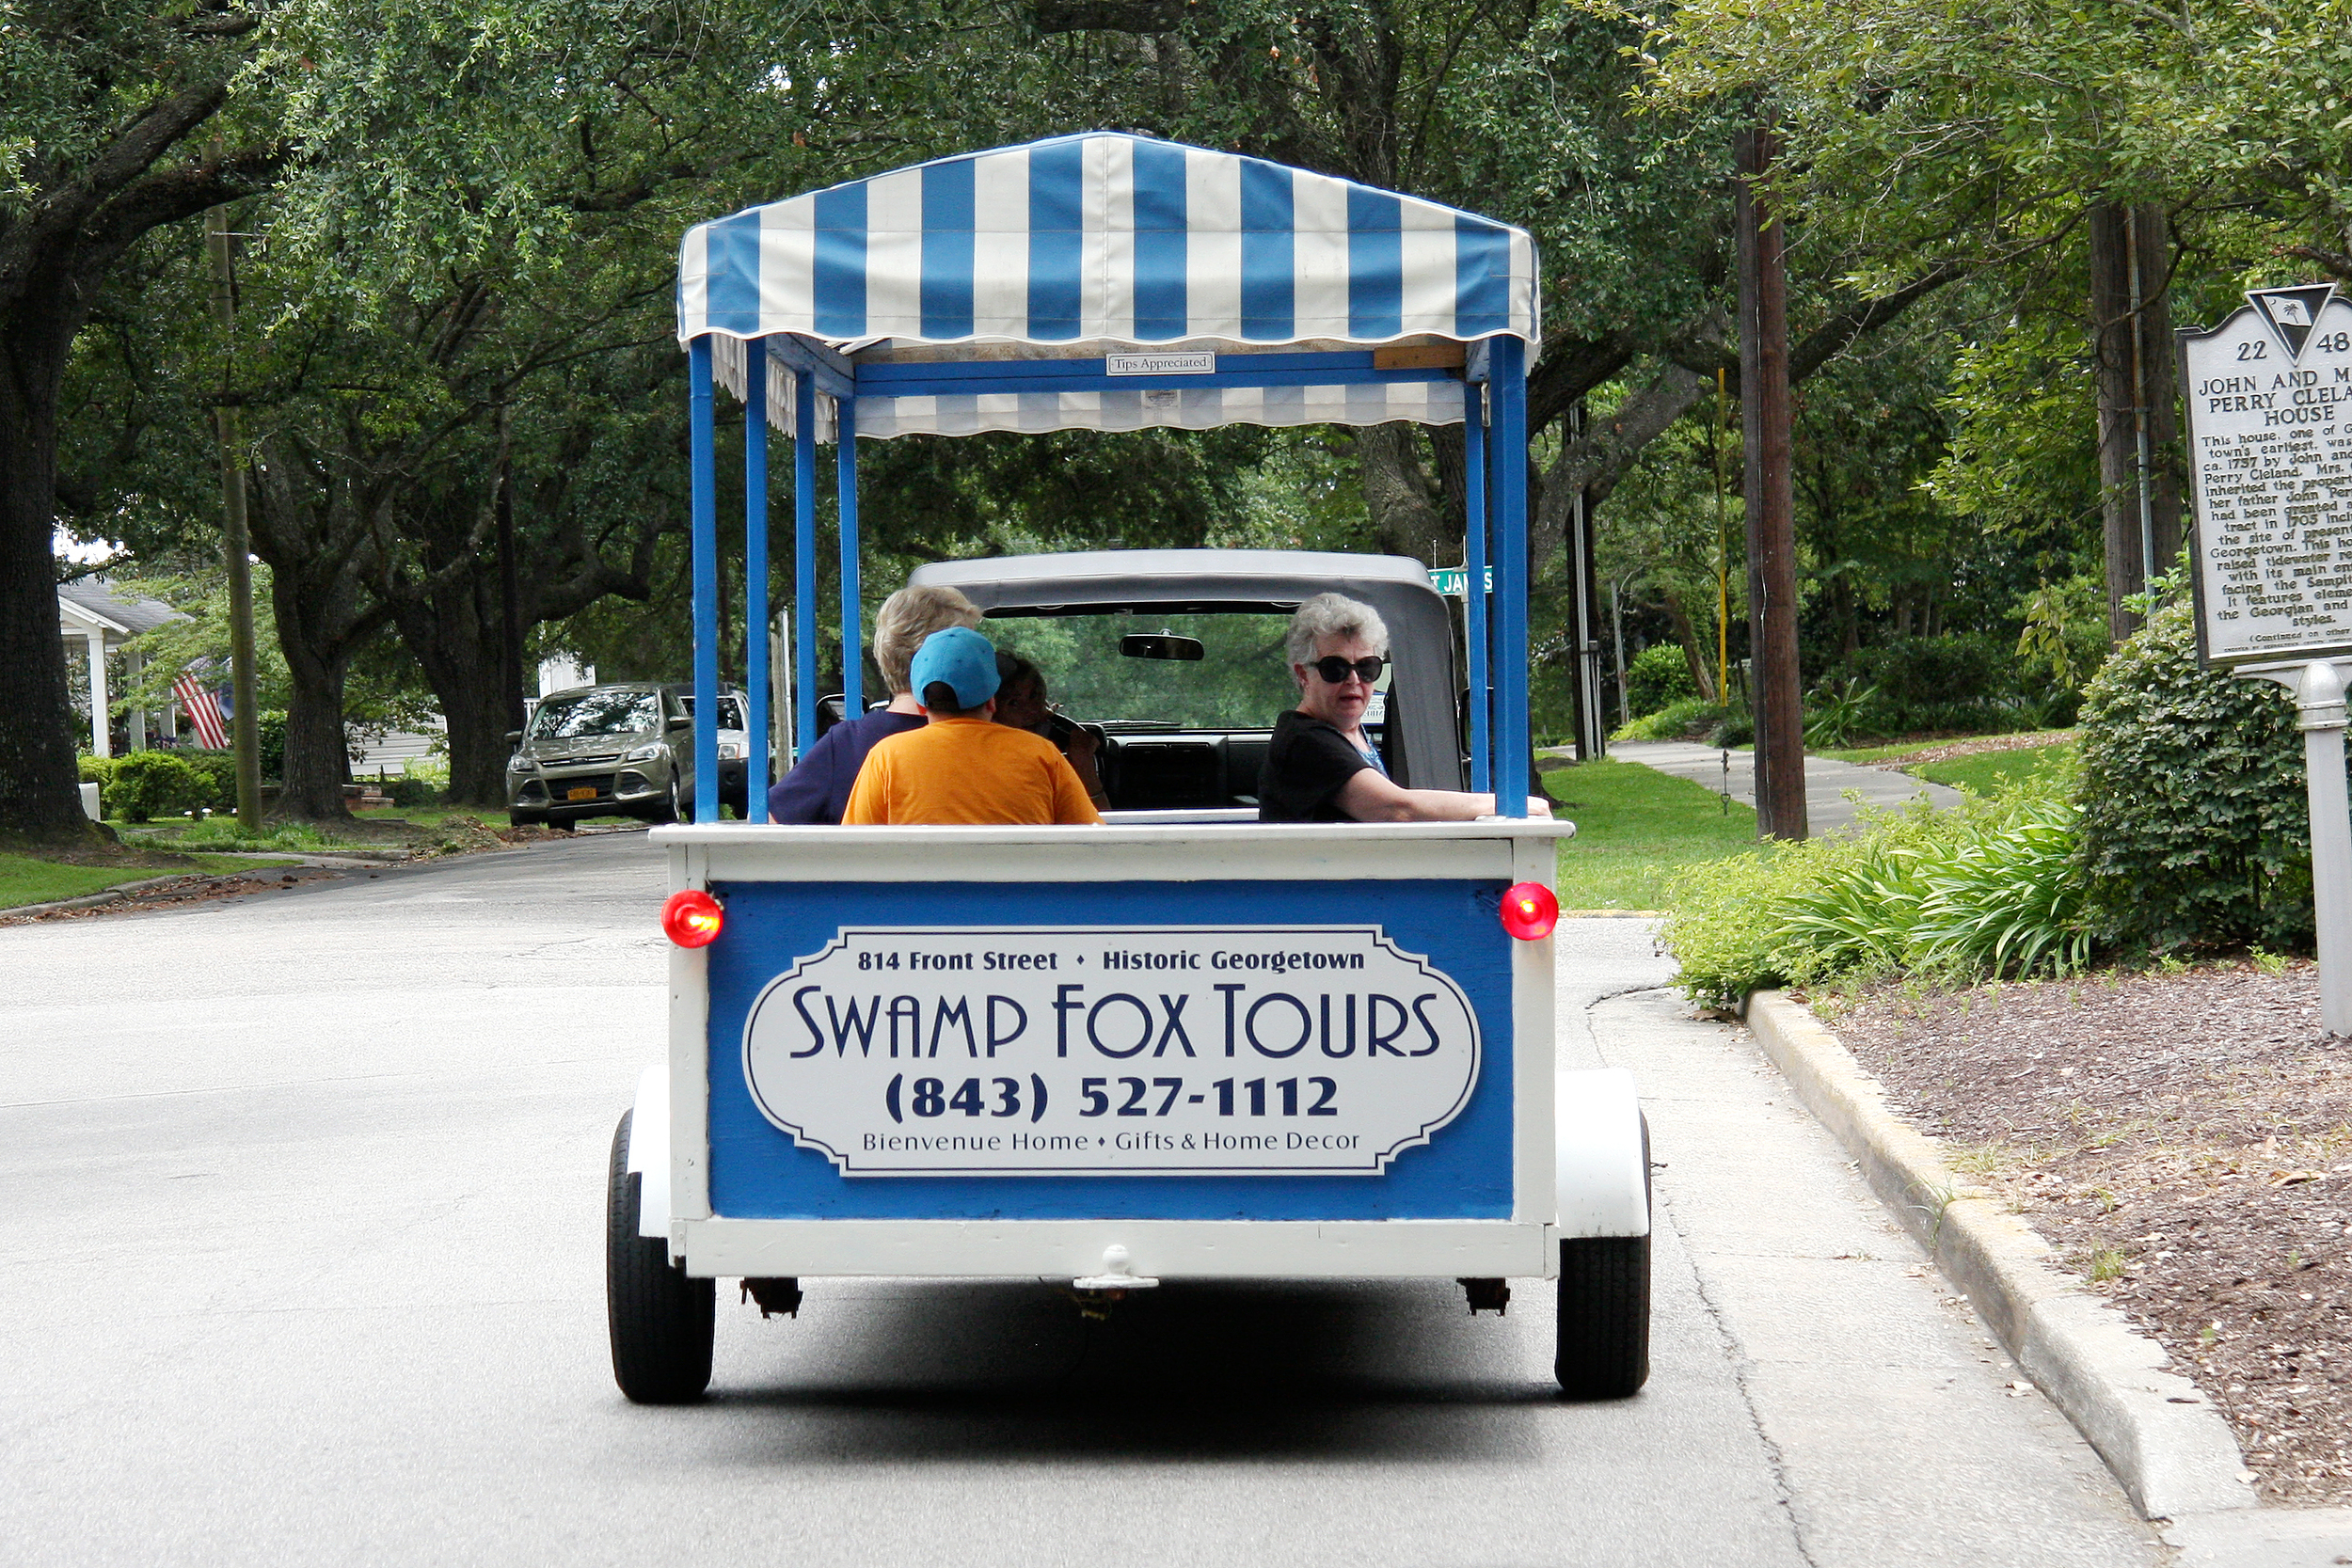 Swamp fox tours.jpg